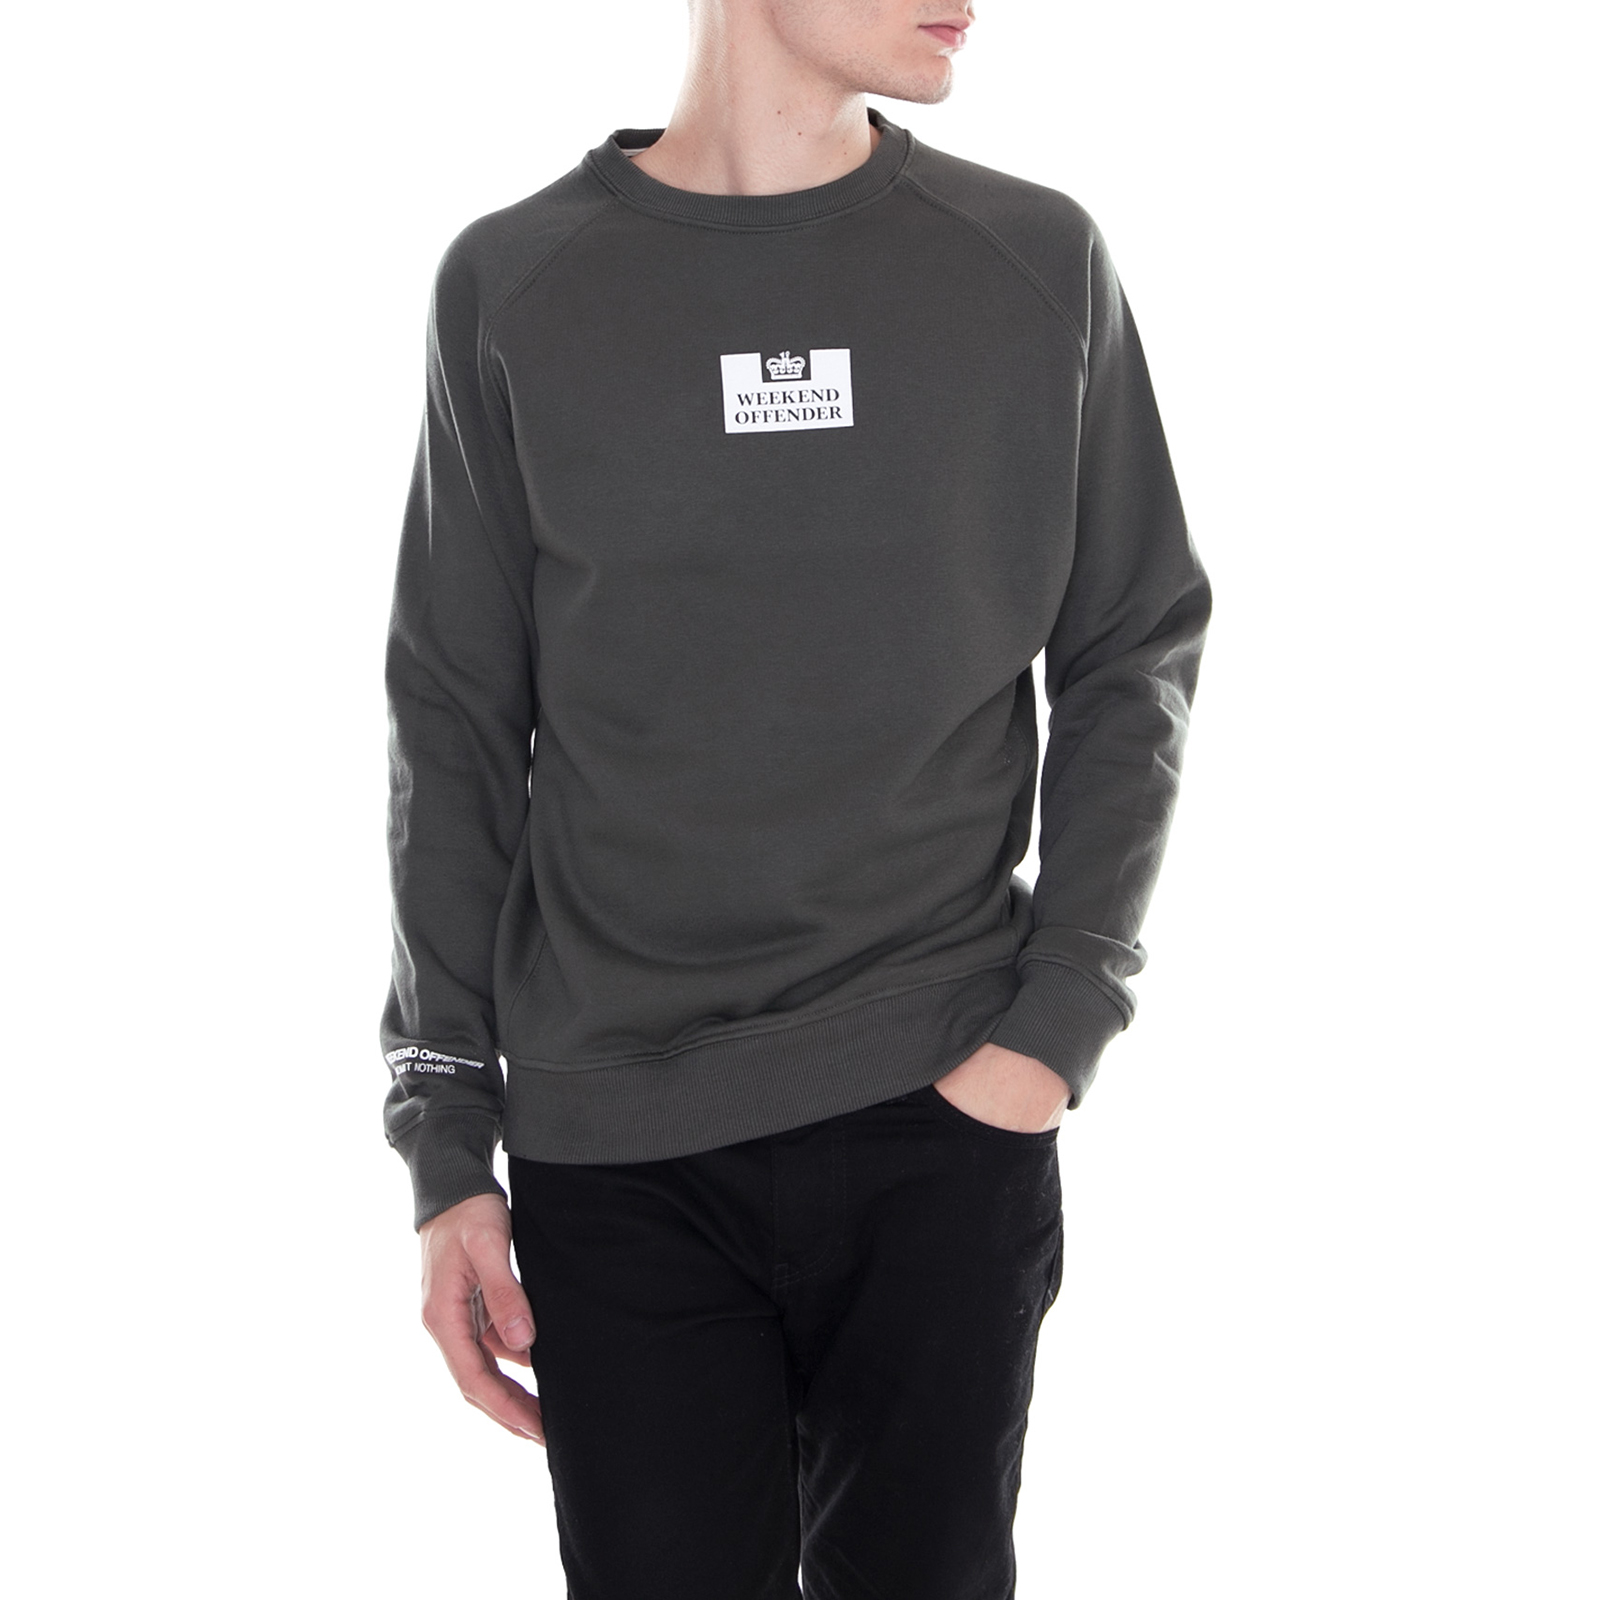 Weekend Saddler Black L Gagner Offender VertPour Sweatshirts lF1TcJK